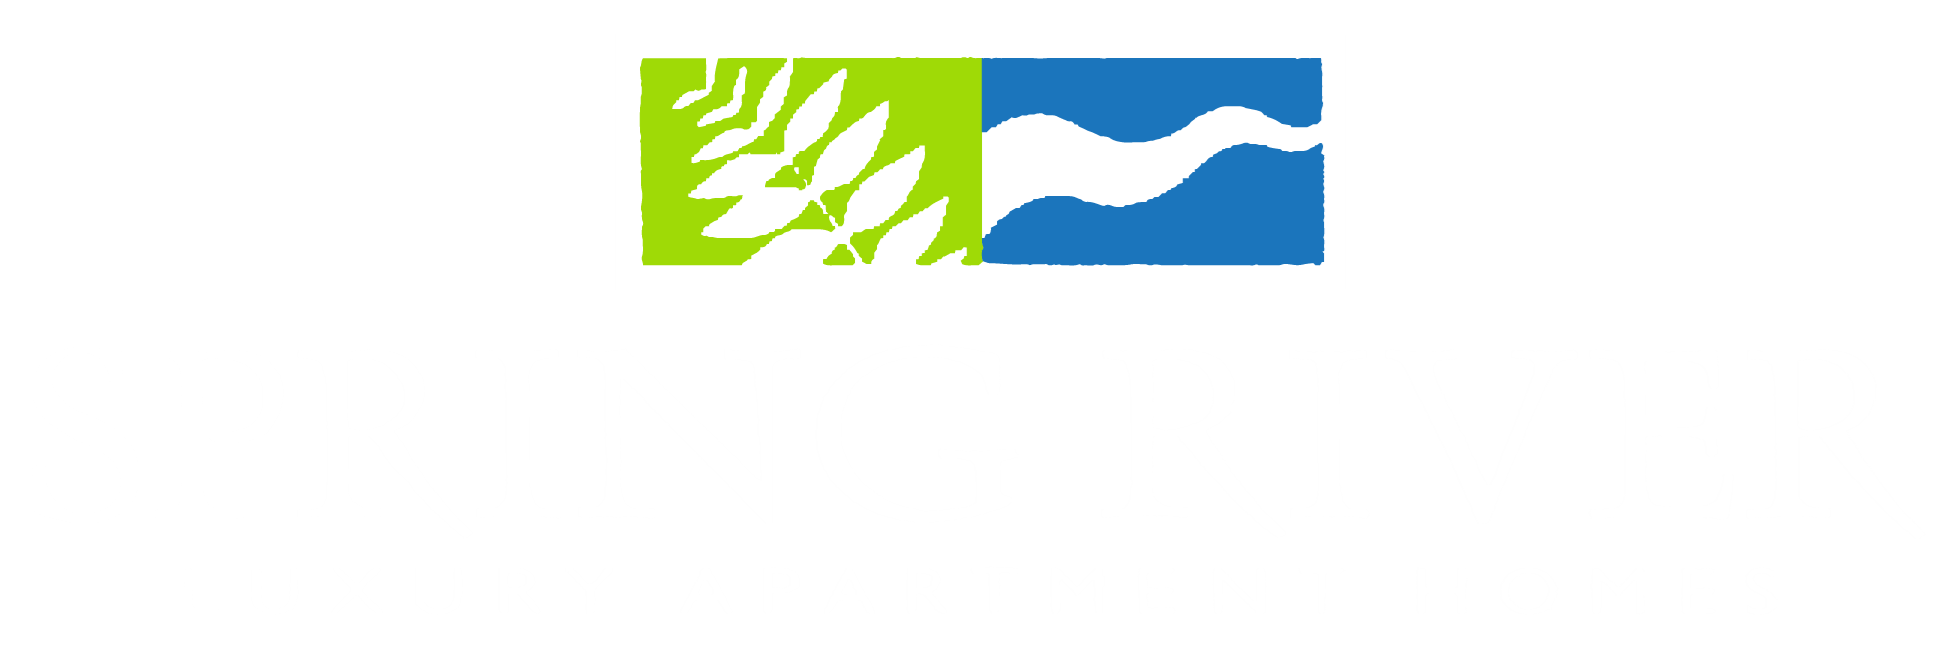 Spring River Luxury Apartment Homes Property Logo 2